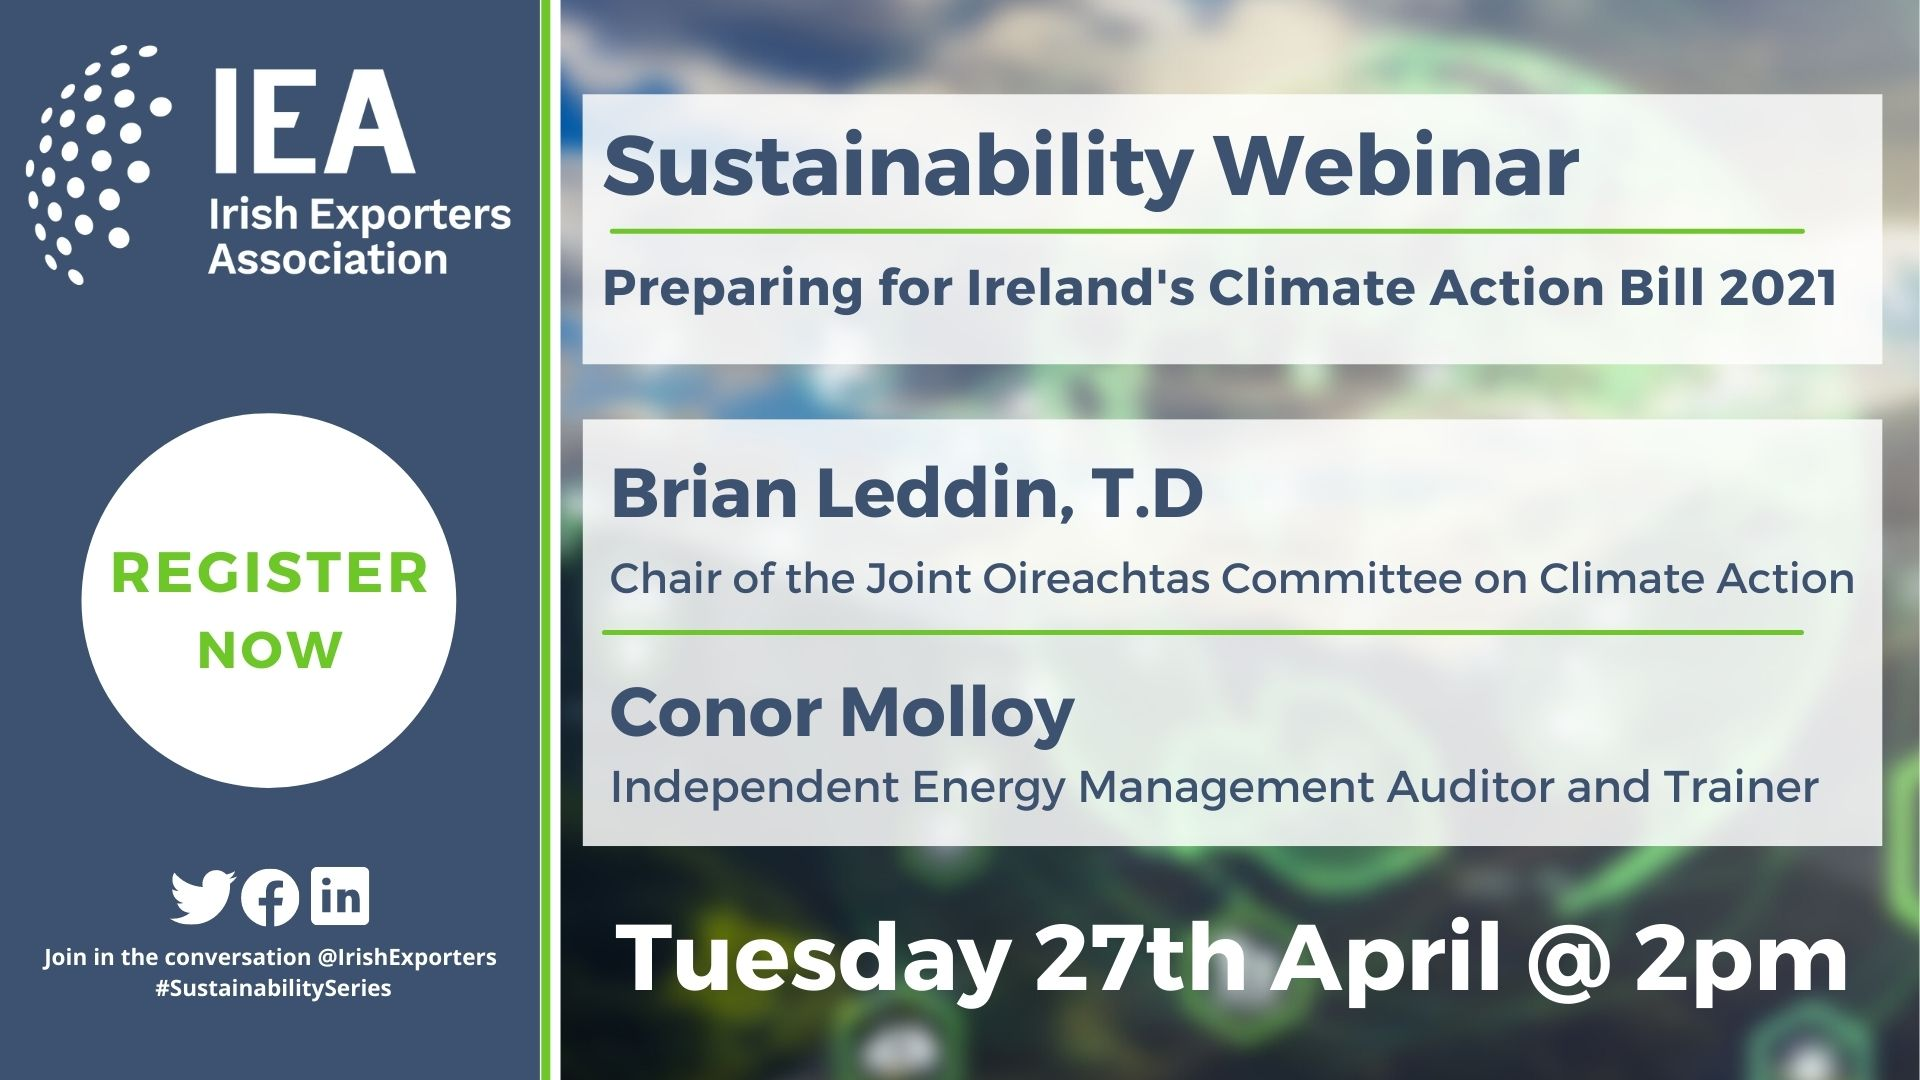 Preparing for Ireland's Climate Action Bill 2021